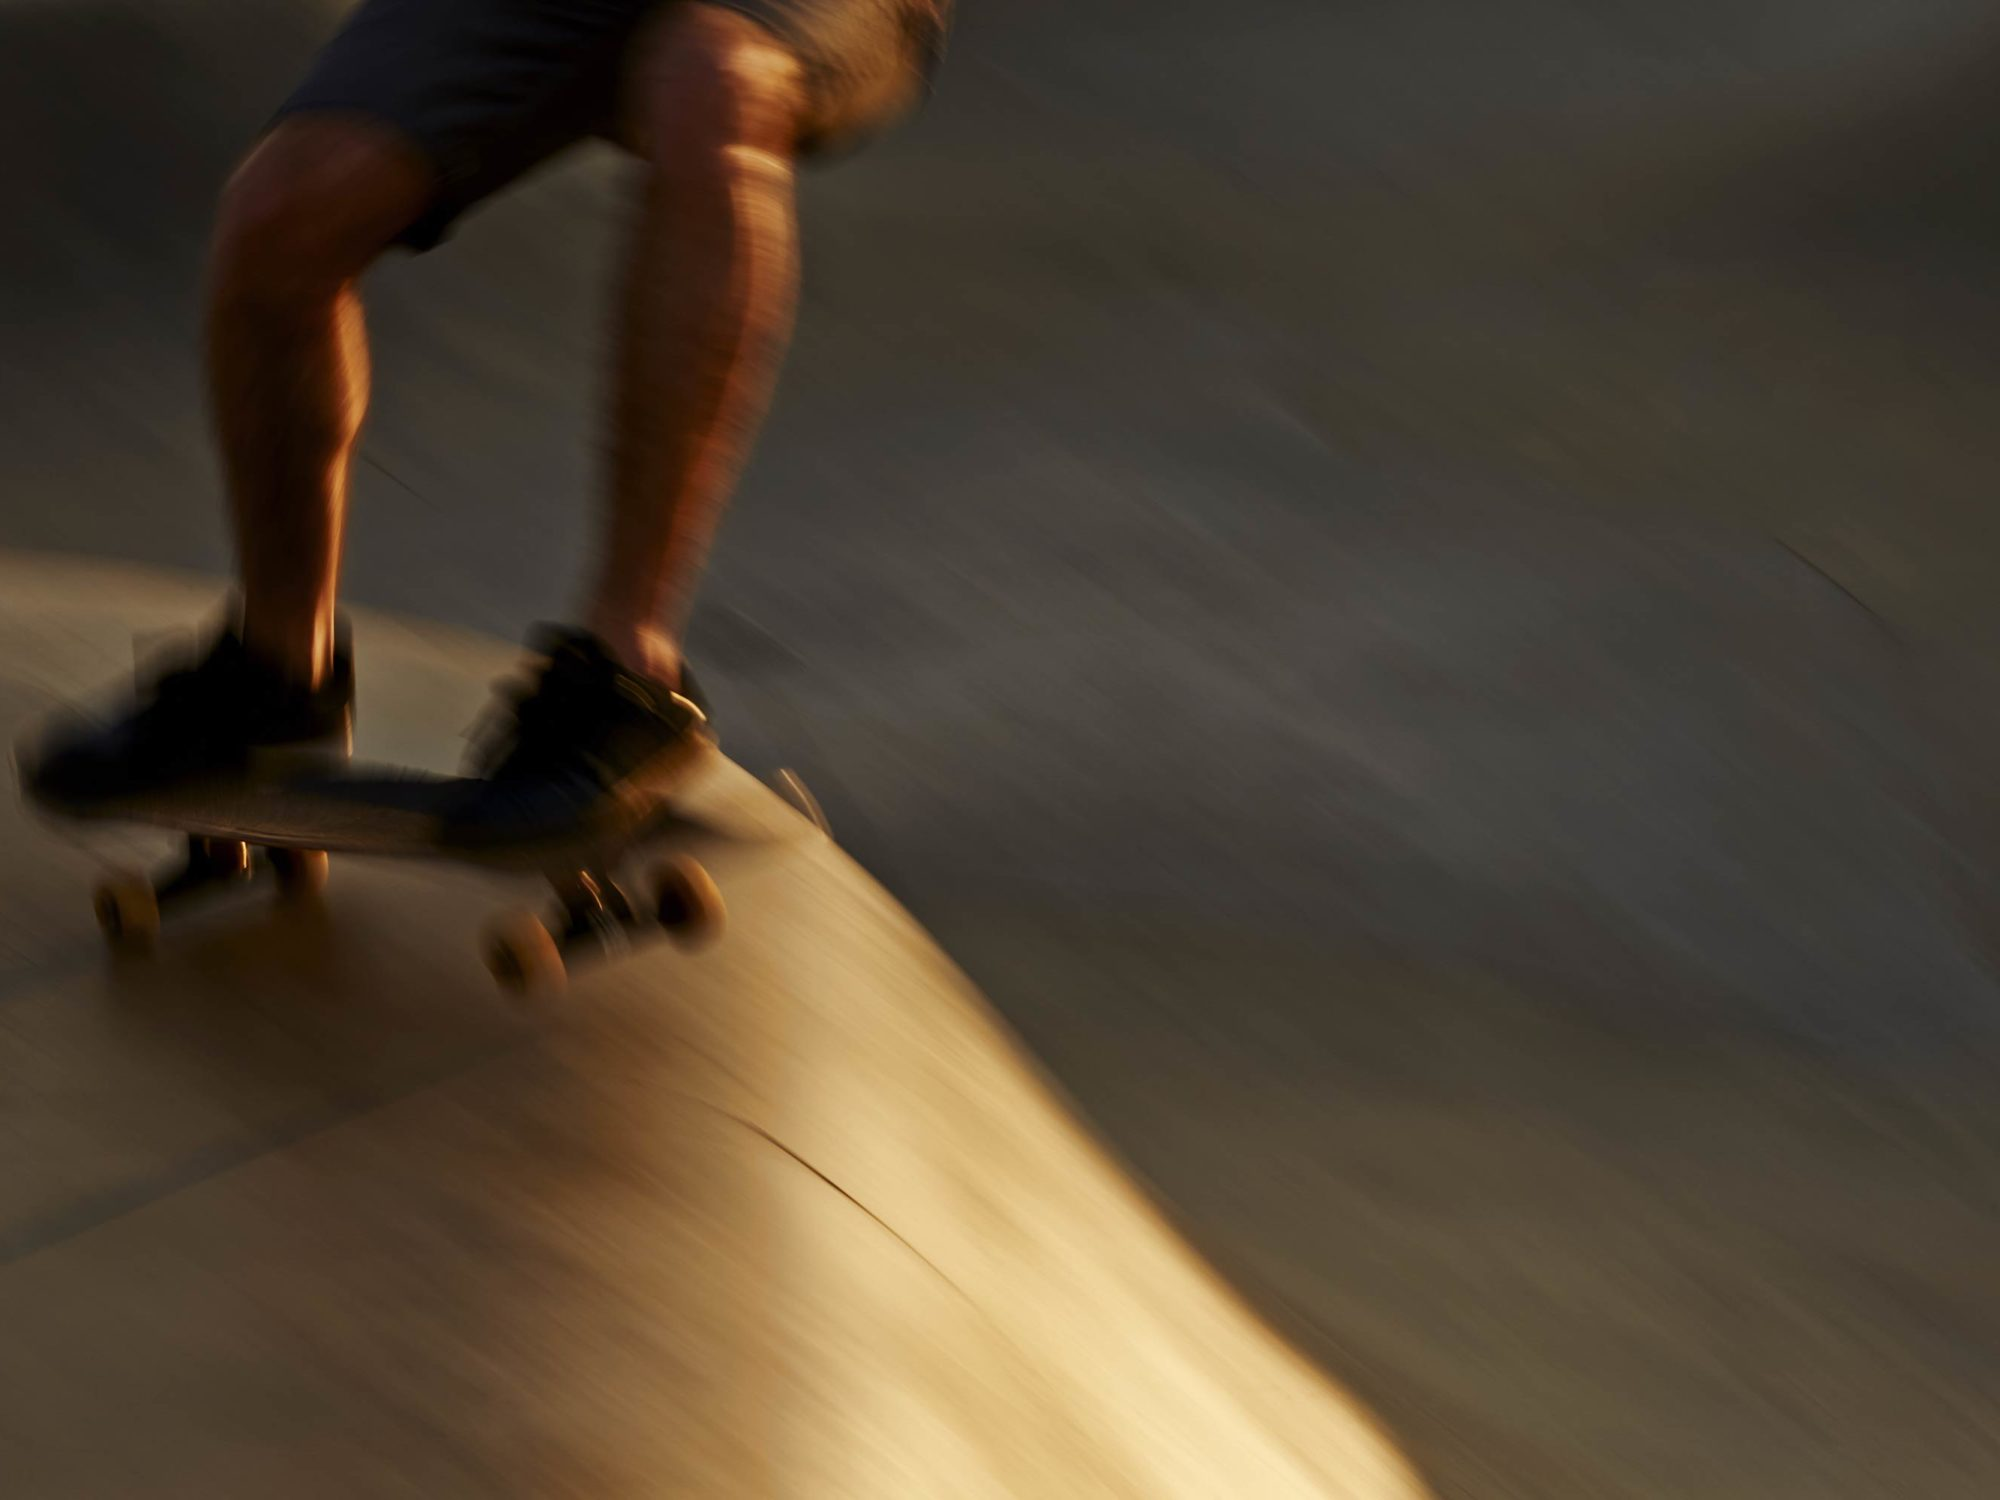 Golden Blur 2 - Skate Park, Venice Beach Collection - Fine Art Photography by Toby Dixon